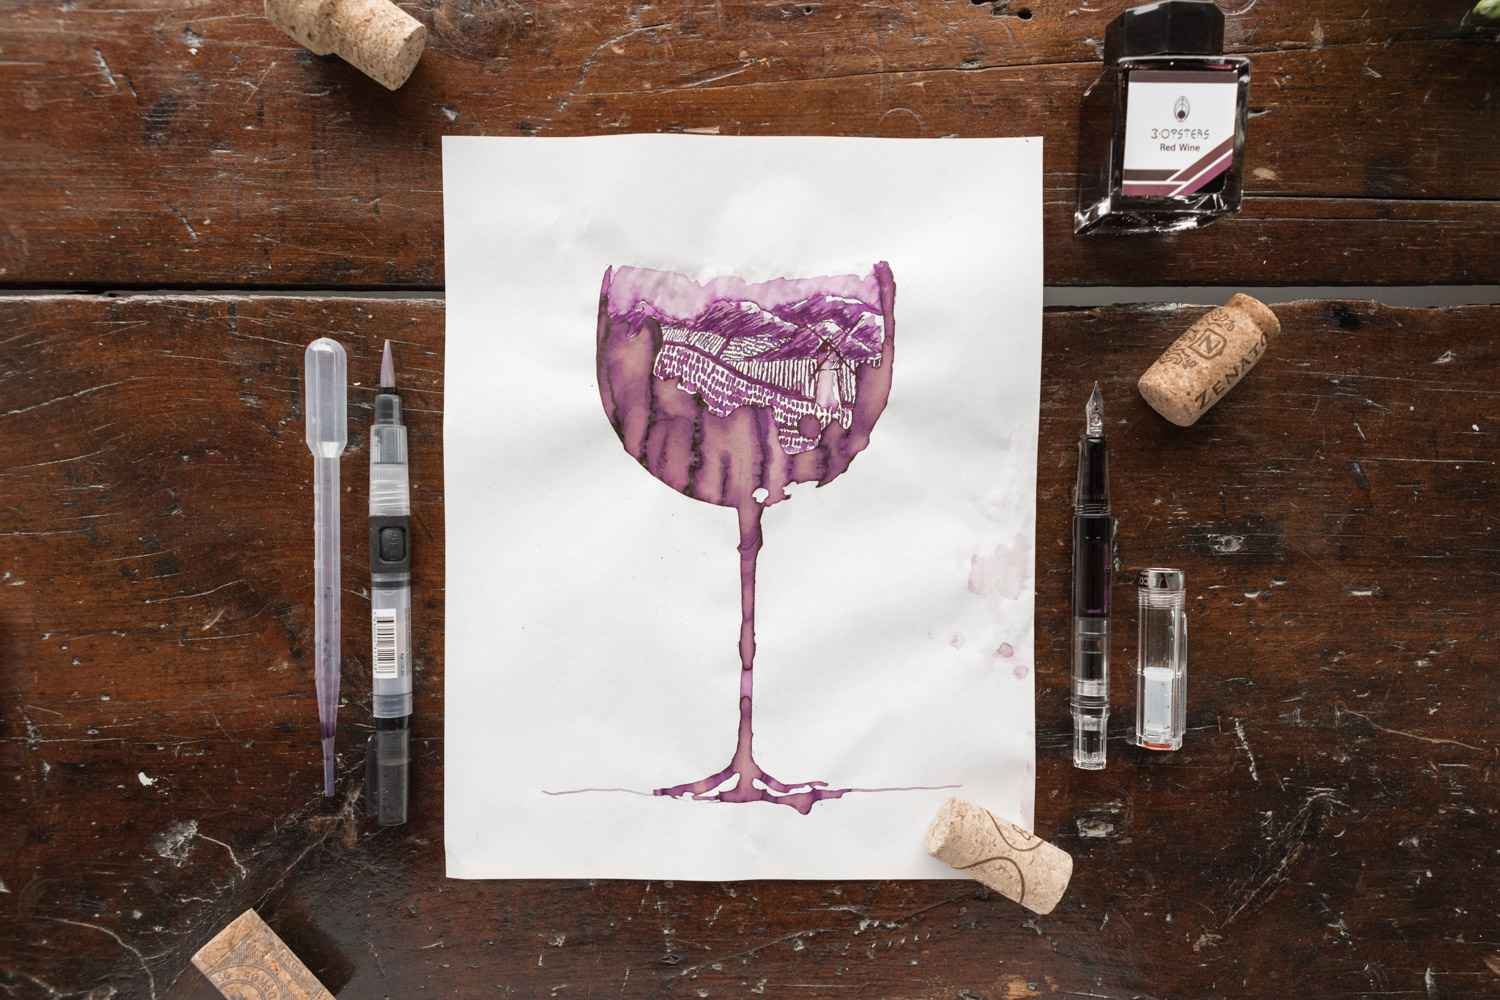 A drawing of a wine glass and a vineyard made using 3 Oysters Red Wine Ink.